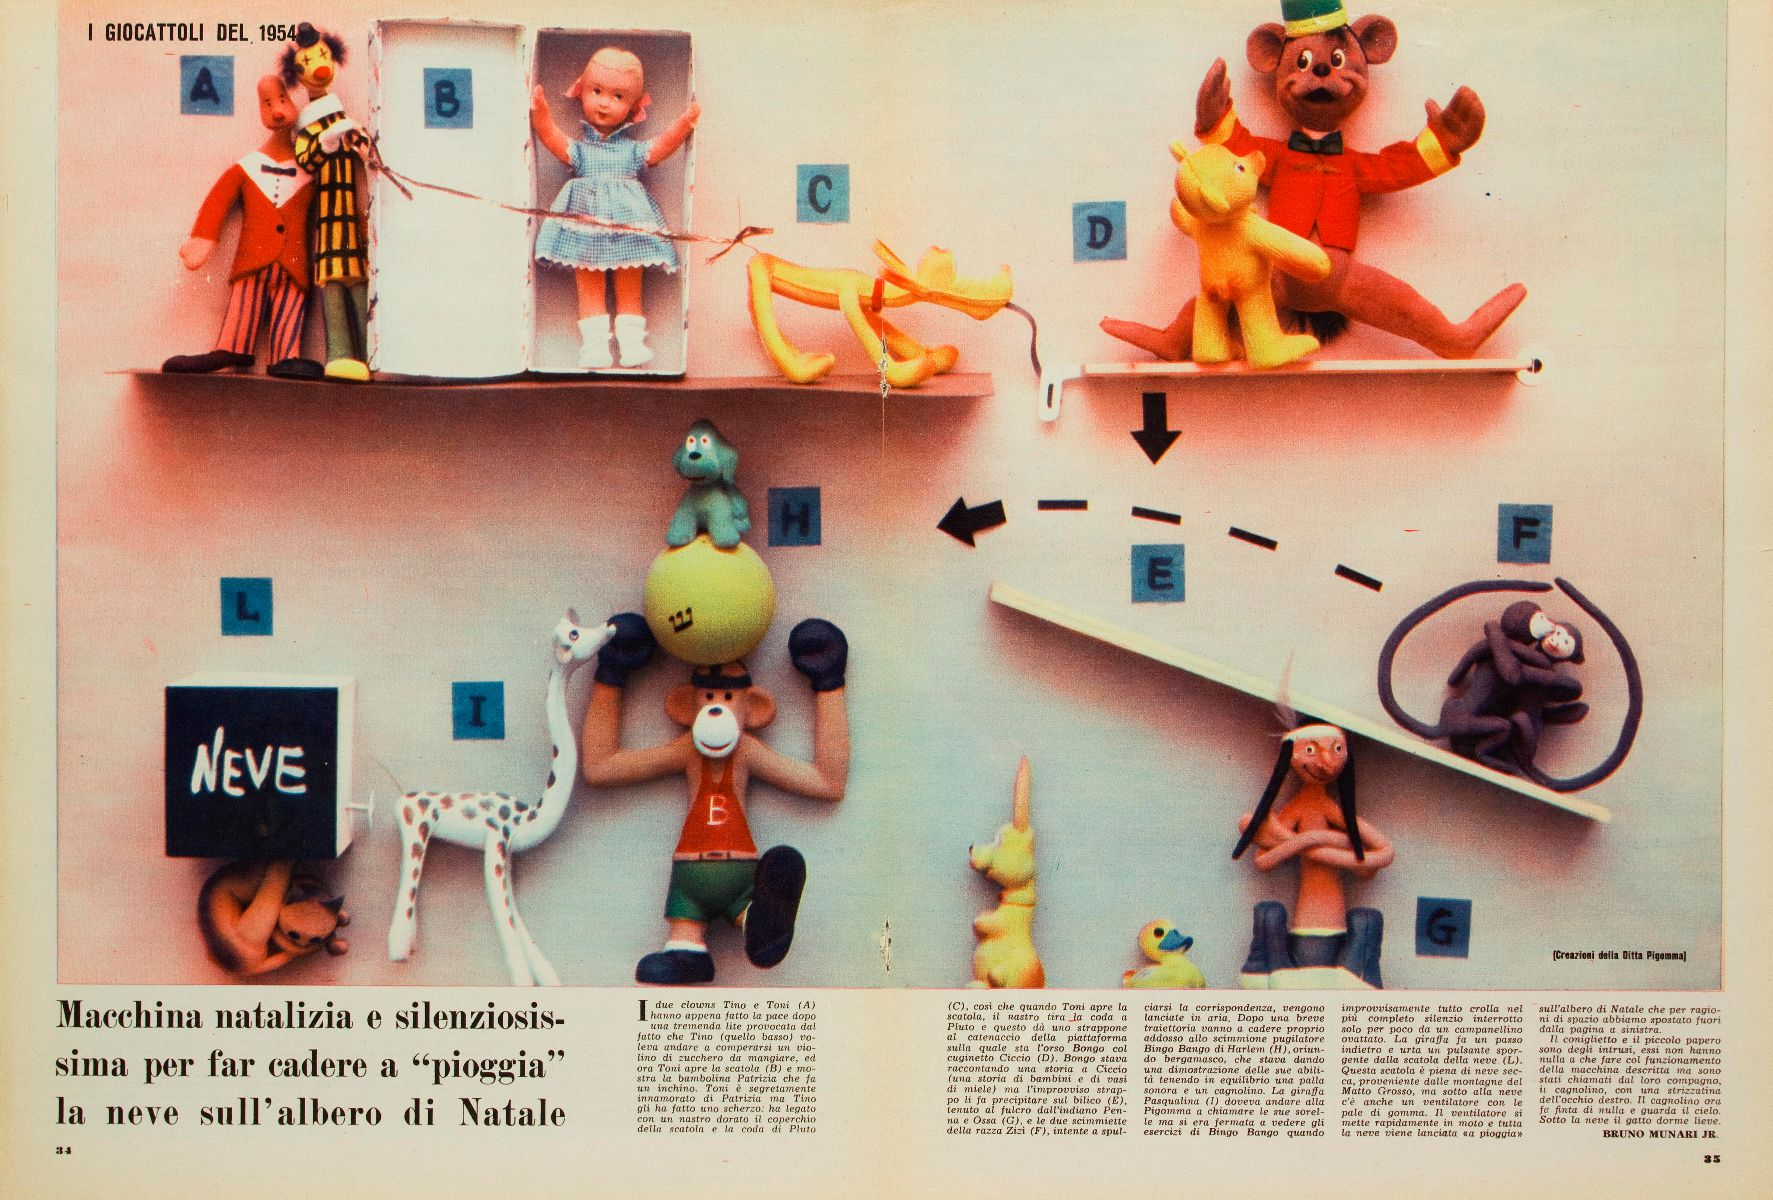 Albero Di Natale Yahoo.Pirelli Toys In The 1950s From Pigomma To The Rempel Patent